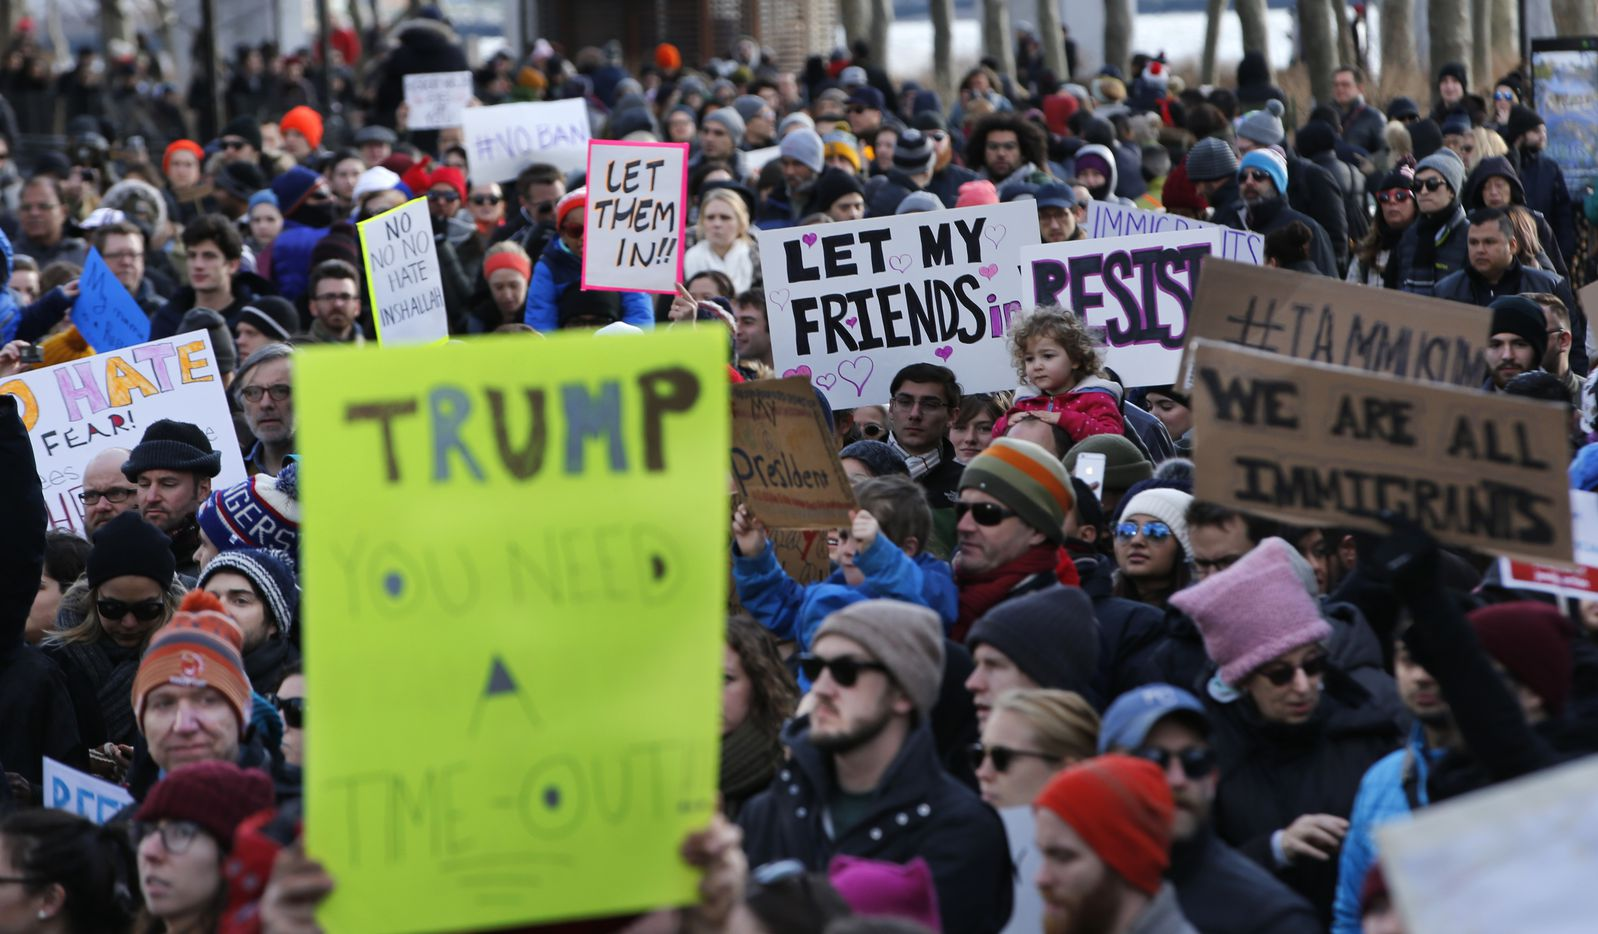 Immigrants' rights' advocates rally in opposition to President Donald Trump's immigration order, Sunday, Jan. 29, 2017, in New York. Some travelers were detained at airports, while panicked families searched for relatives as protesters such as these registered opposition to the president's sweeping measure that was blocked by several federal courts. (AP Photo/Kathy Willens)